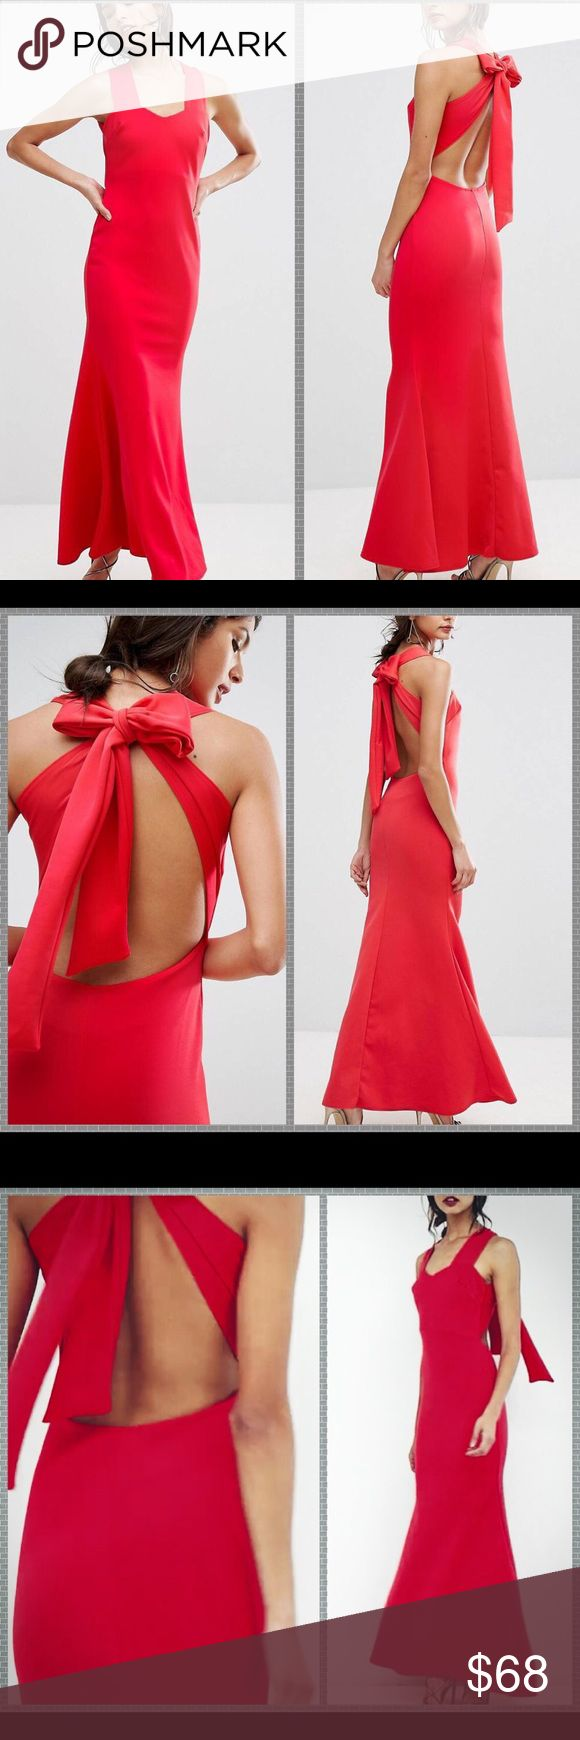 NWT ASOS open back red maxi dress Smooth stretch fabric Sweetheart neck Cut-out back Bow design Slim fit - cut close to the body Machine wash 95% Polyester, 5% Elastane Our model wears a UK 8/EU 36/US 4 and is 5'8 ASOS Dresses Prom